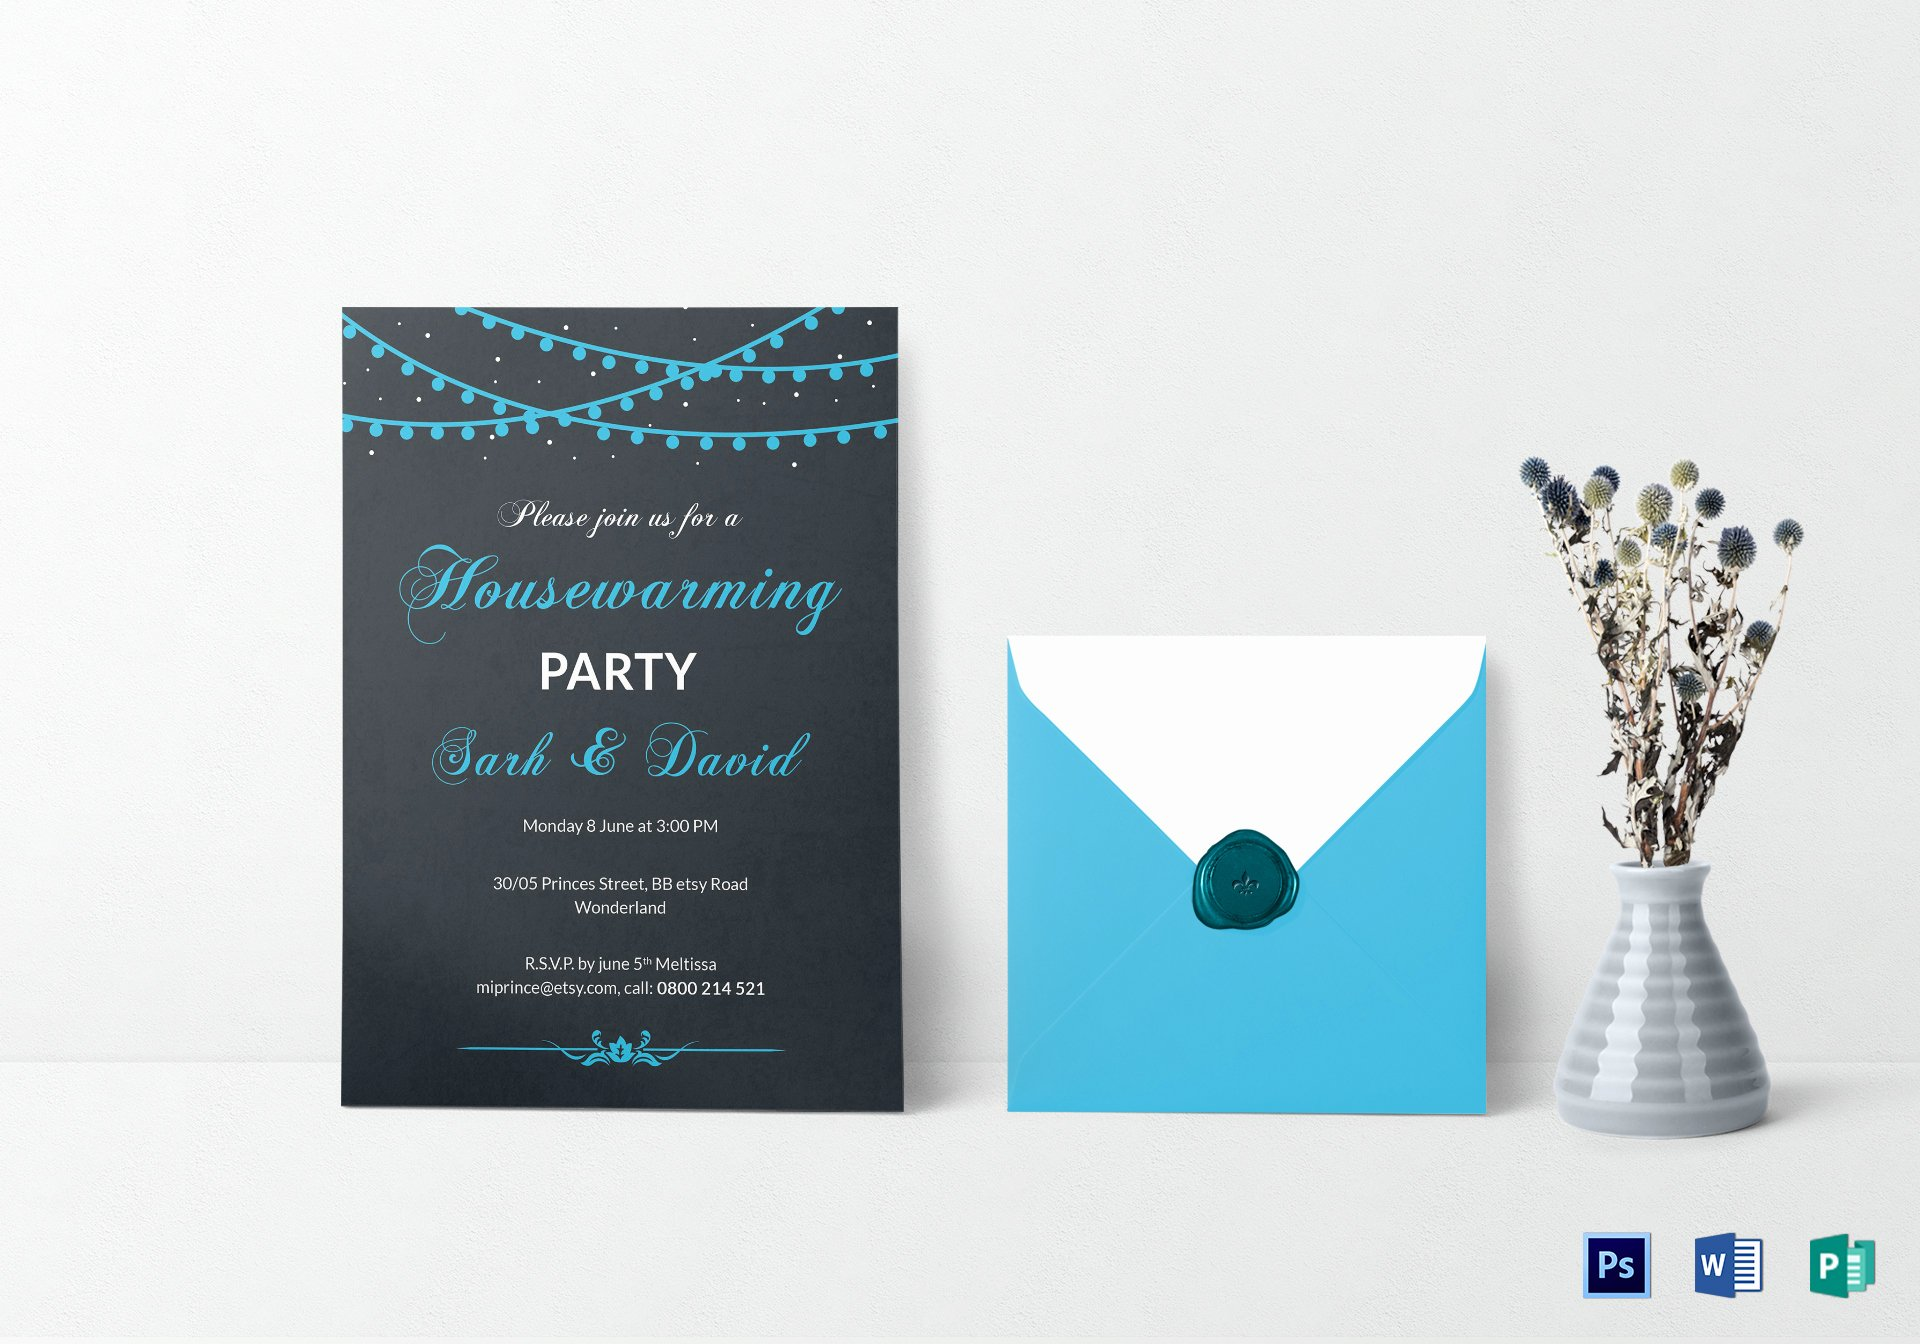 Housewarming Invitation Template Microsoft Word Unique Classic Housewarming Invitation Design Template In Psd Word Publisher